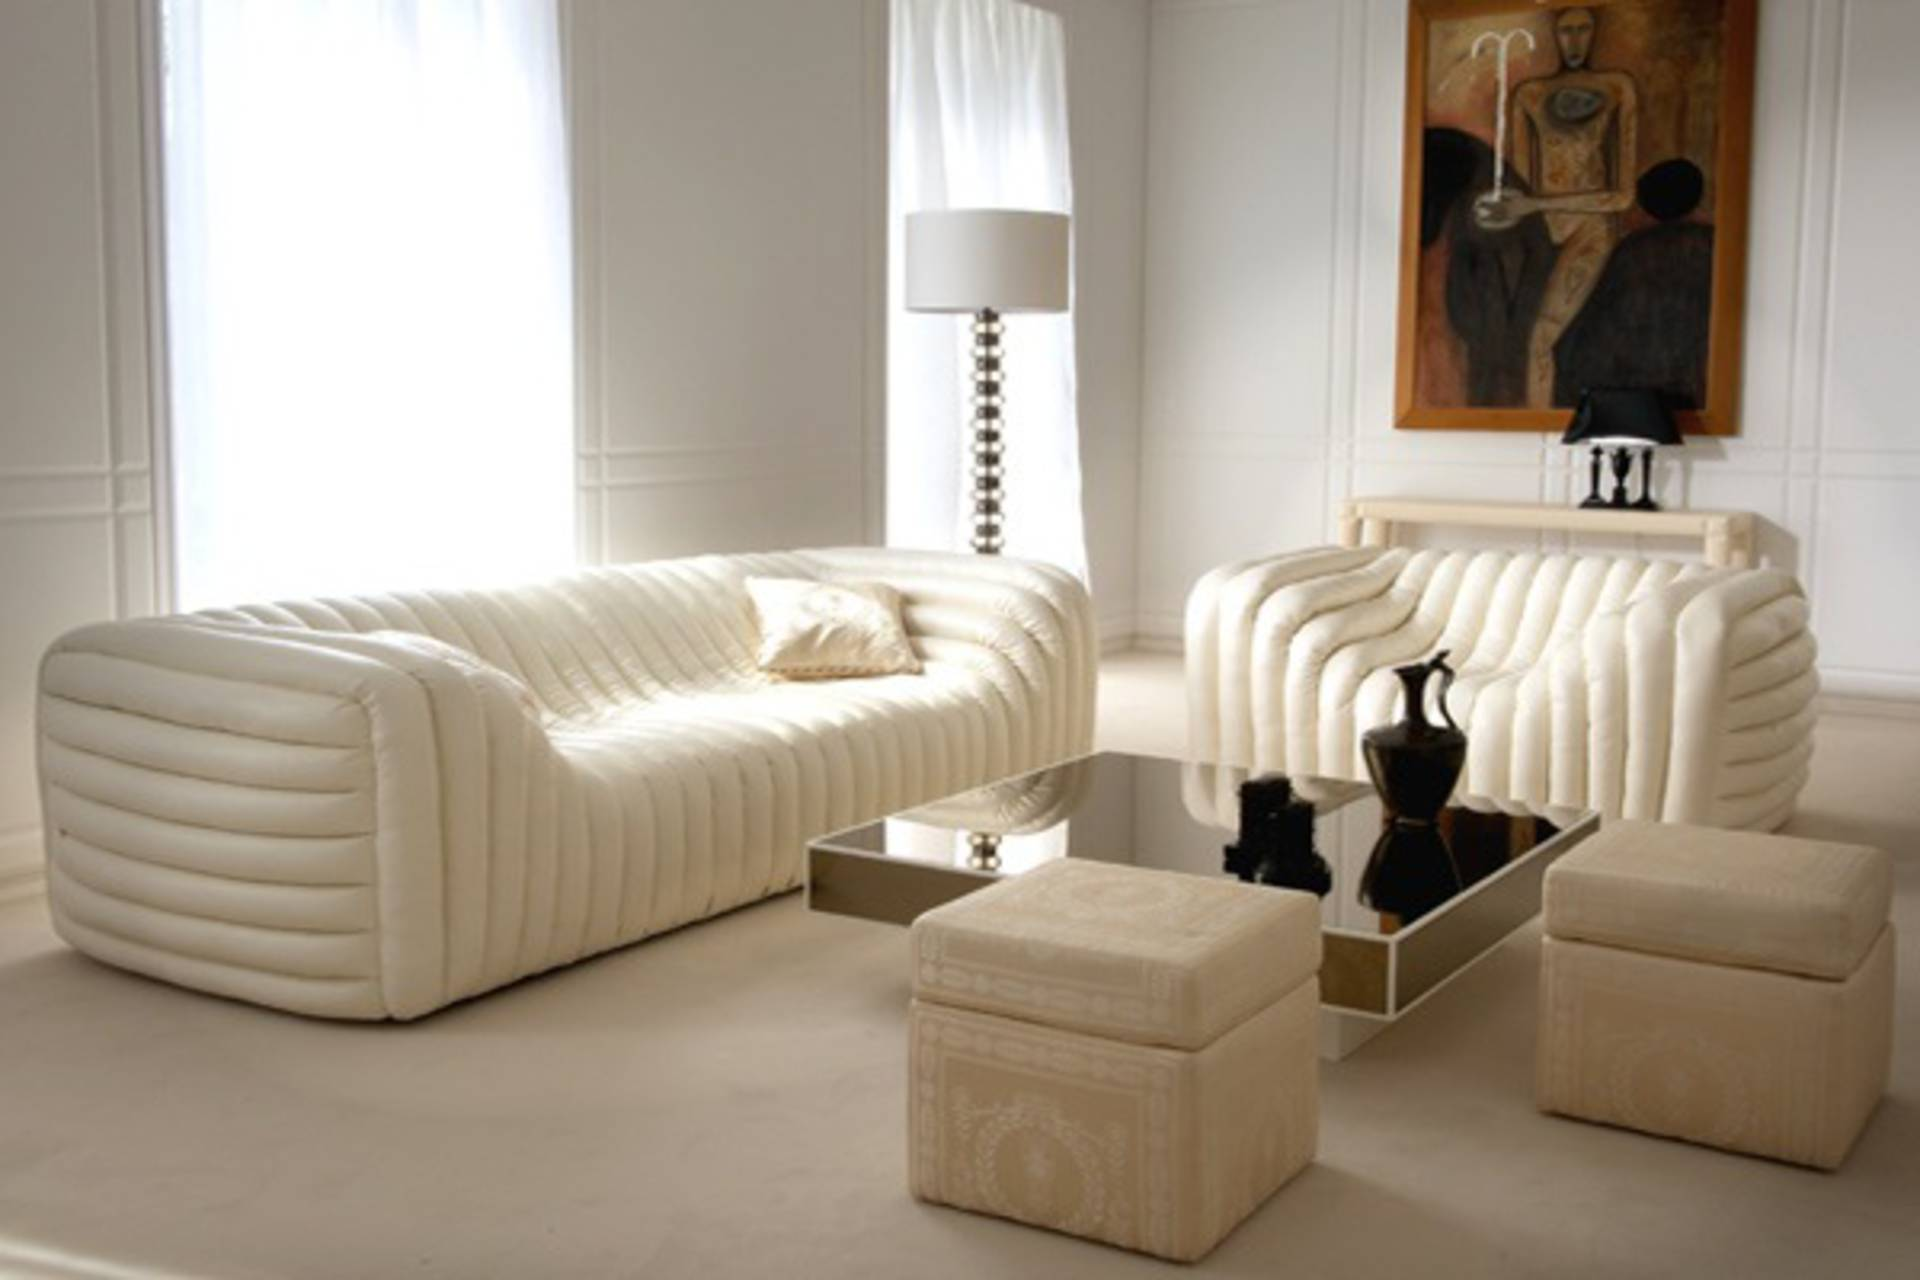 Versace Sofa Collection for your living-room - Home Reviews